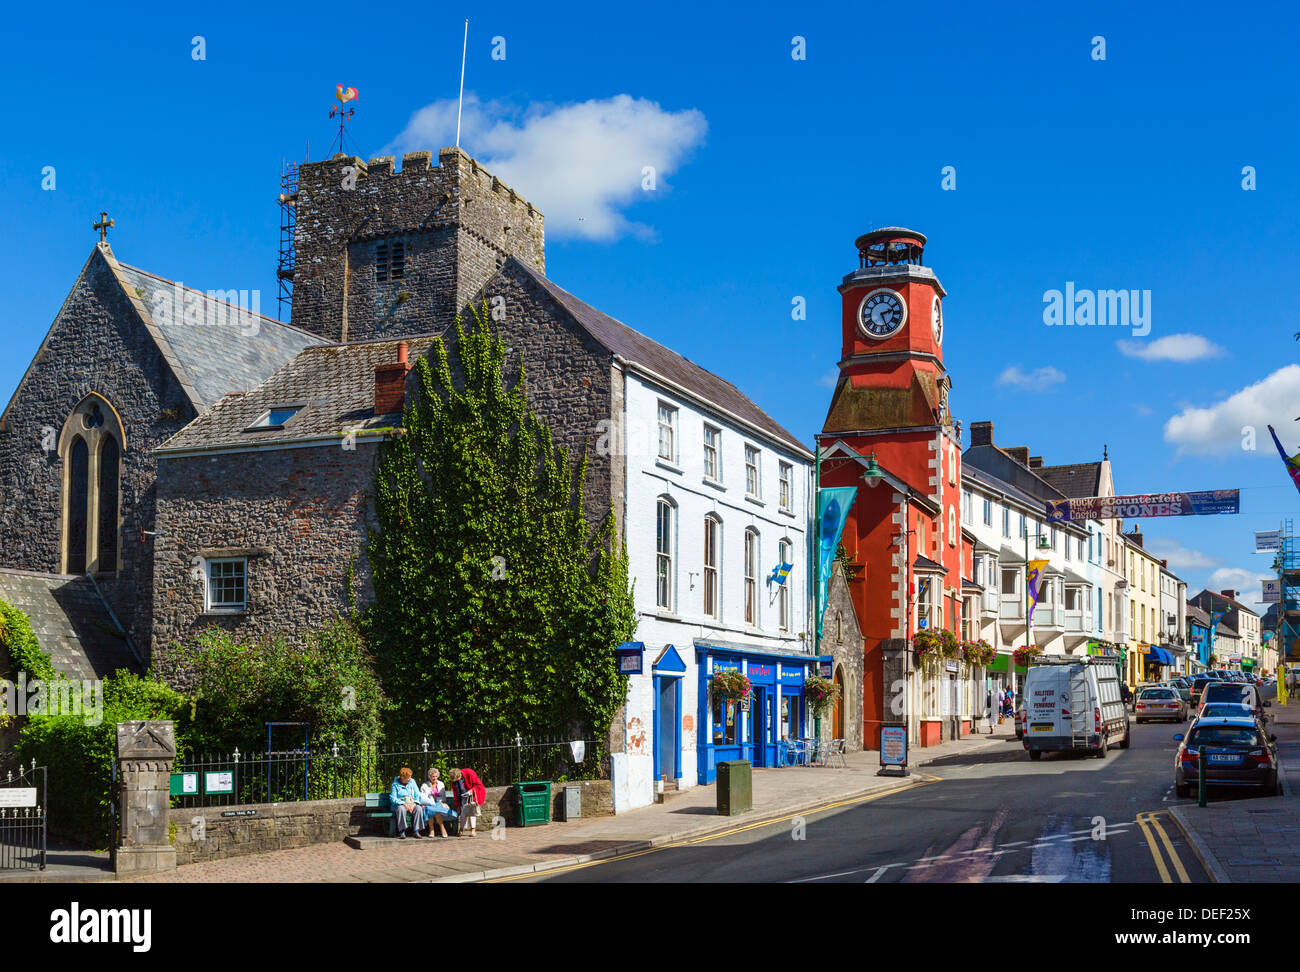 View down Main Street in the town centre, Pembroke, Pembrokeshire, Wales, UK - Stock Image